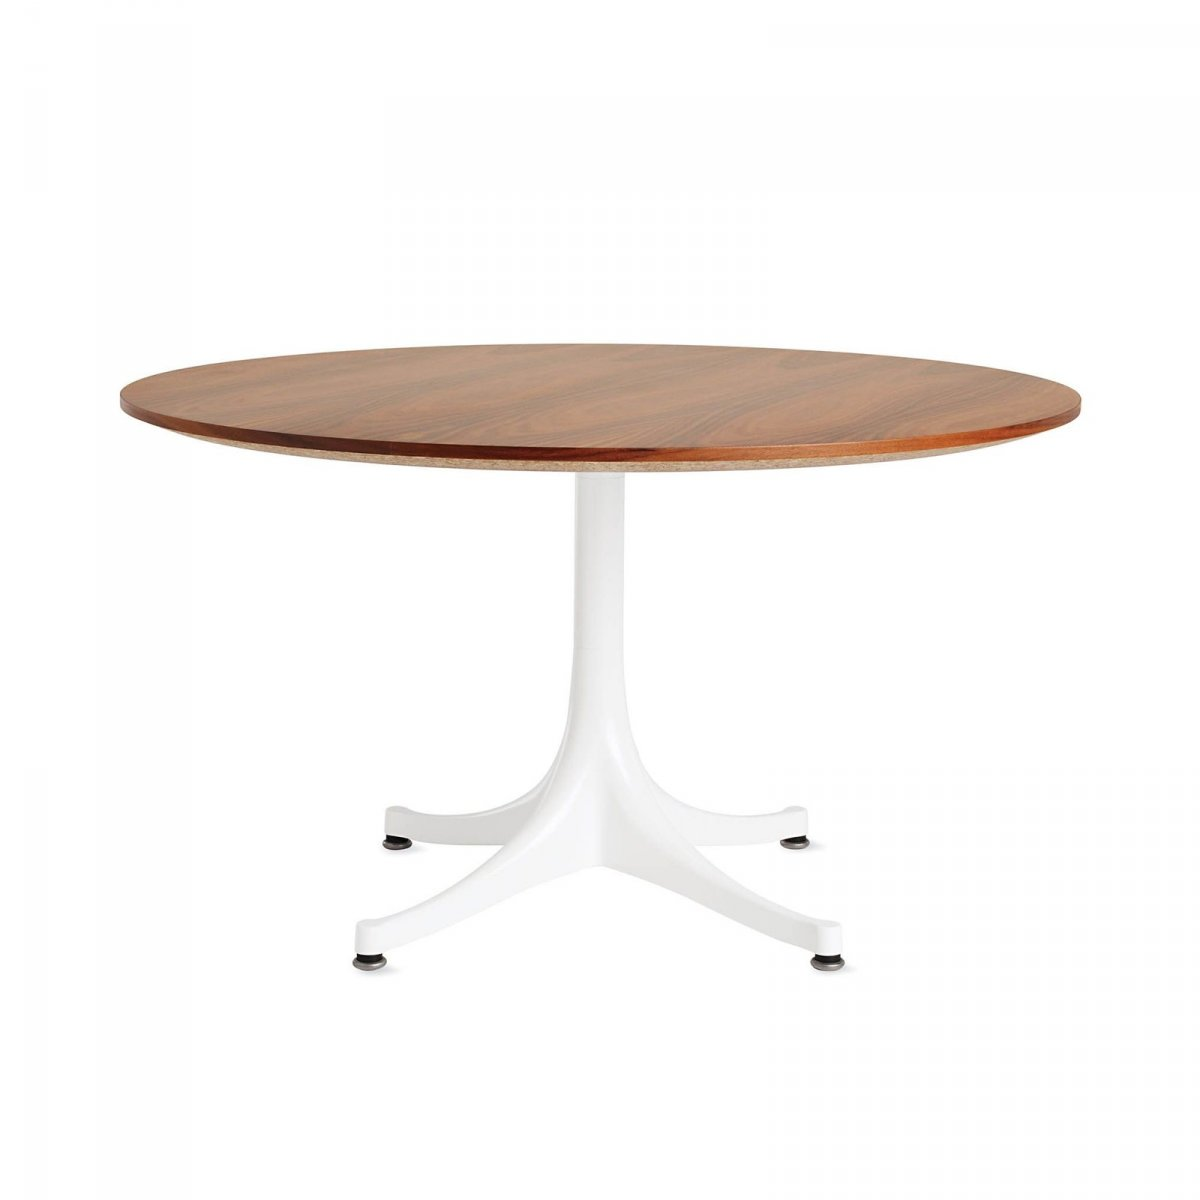 Nelson Pedestal Table 5452, santos palisander top with white base.